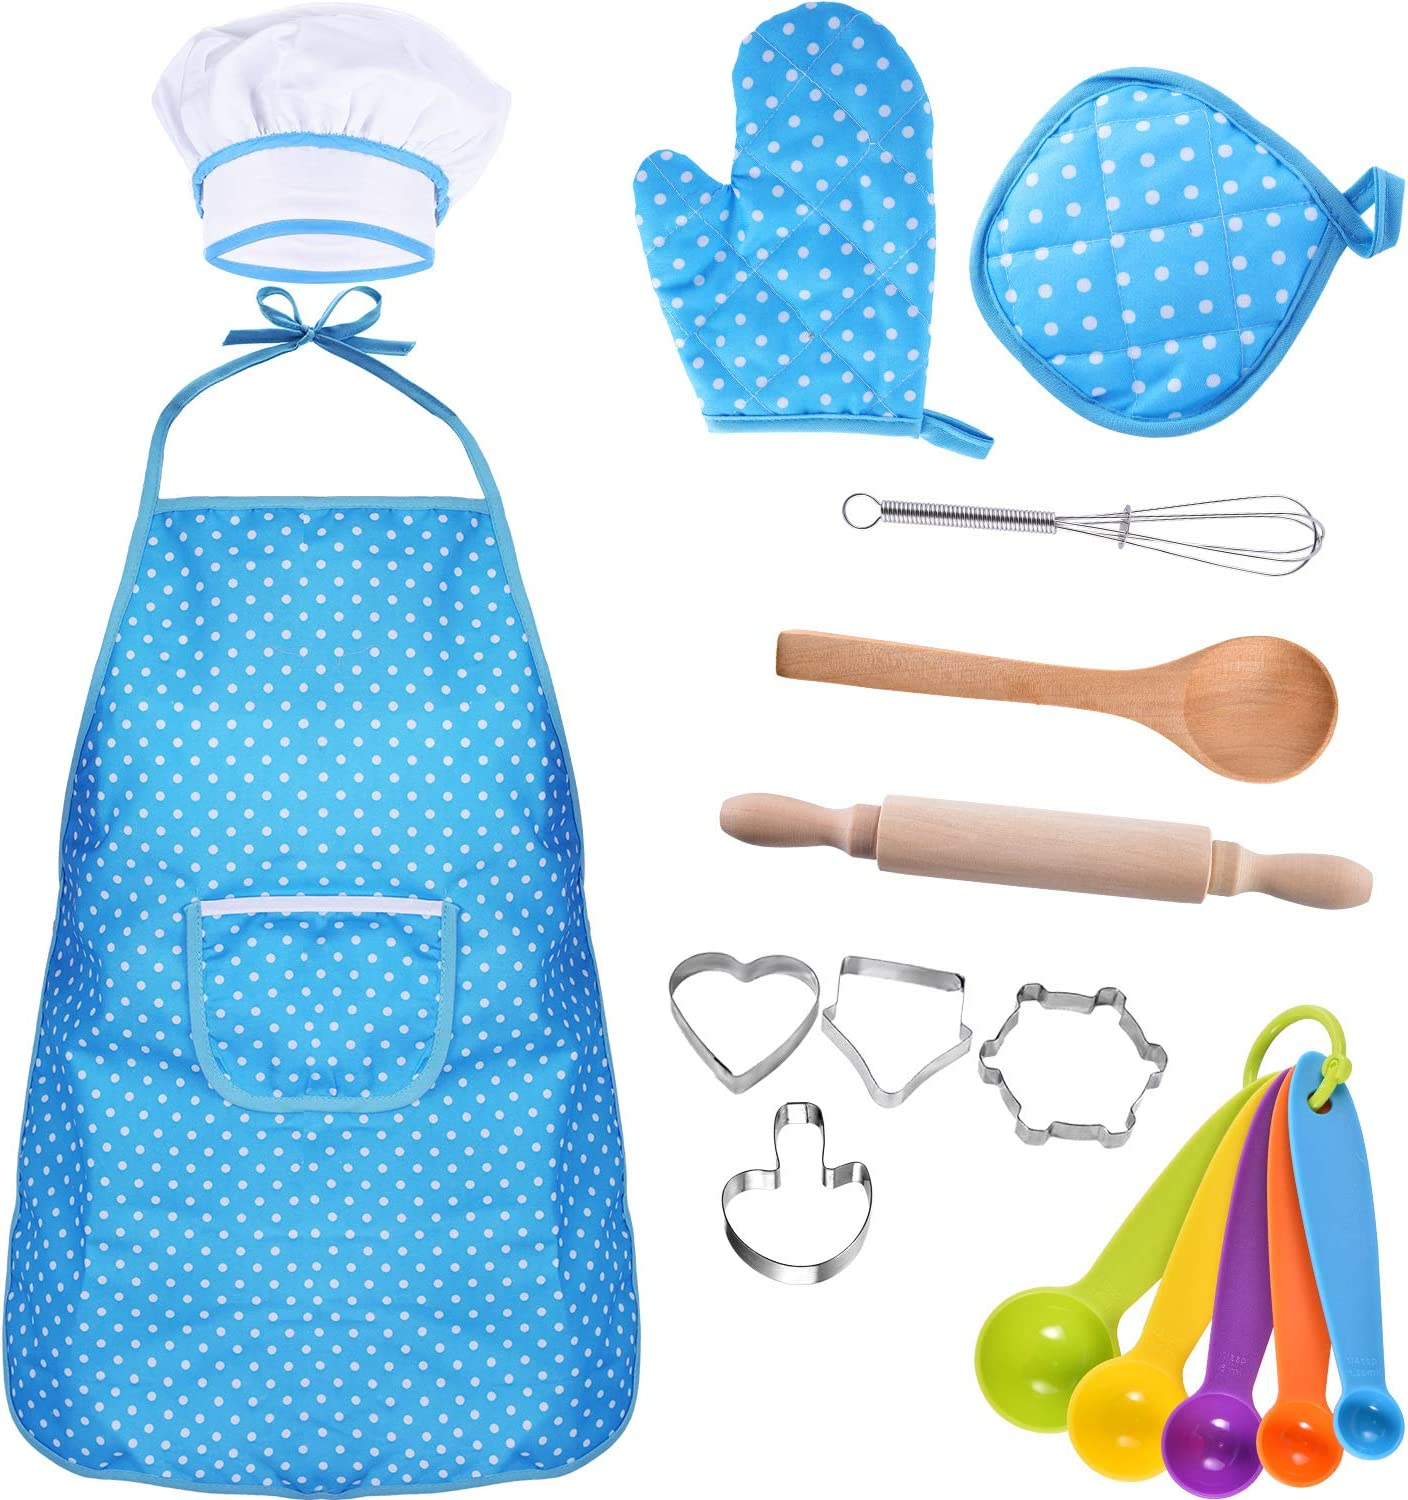 Bememo Kids Chef Set Children Cooking Play Kids Cook Costume with Utensils for Girls Childrens Day Gift Pink 16 Pieces